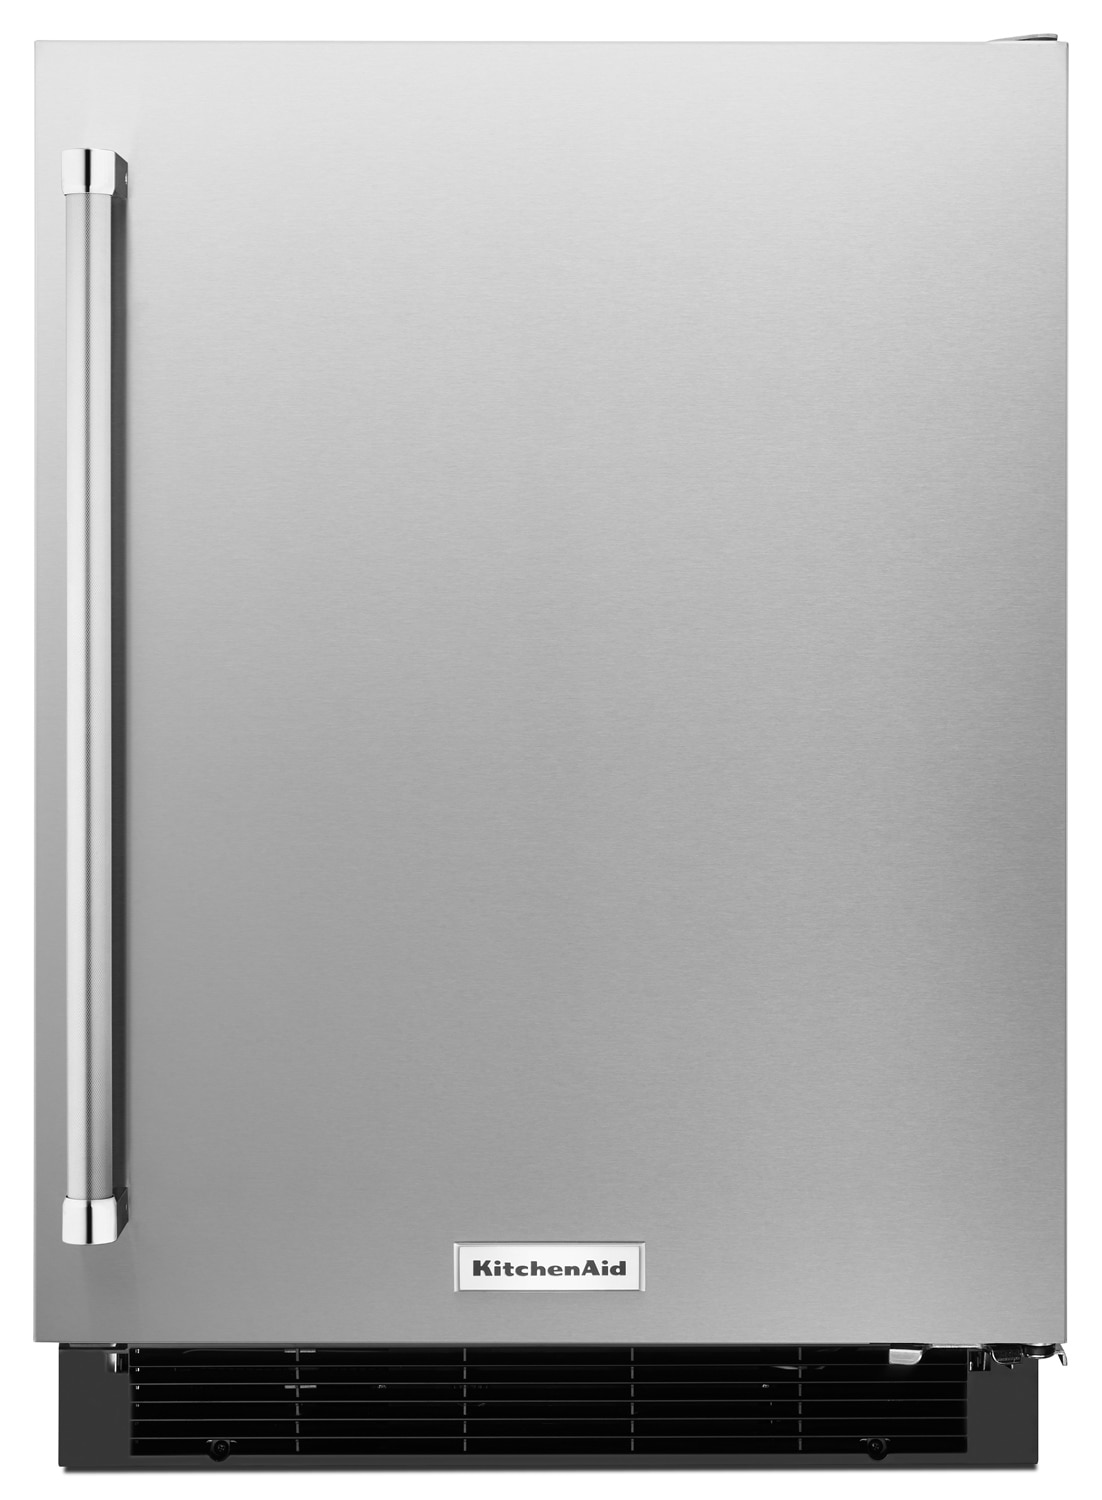 Refrigerators and Freezers - KitchenAid 4.9 Cu. Ft. Undercounter Refrigerator with Right Door Swing - Stainless Steel